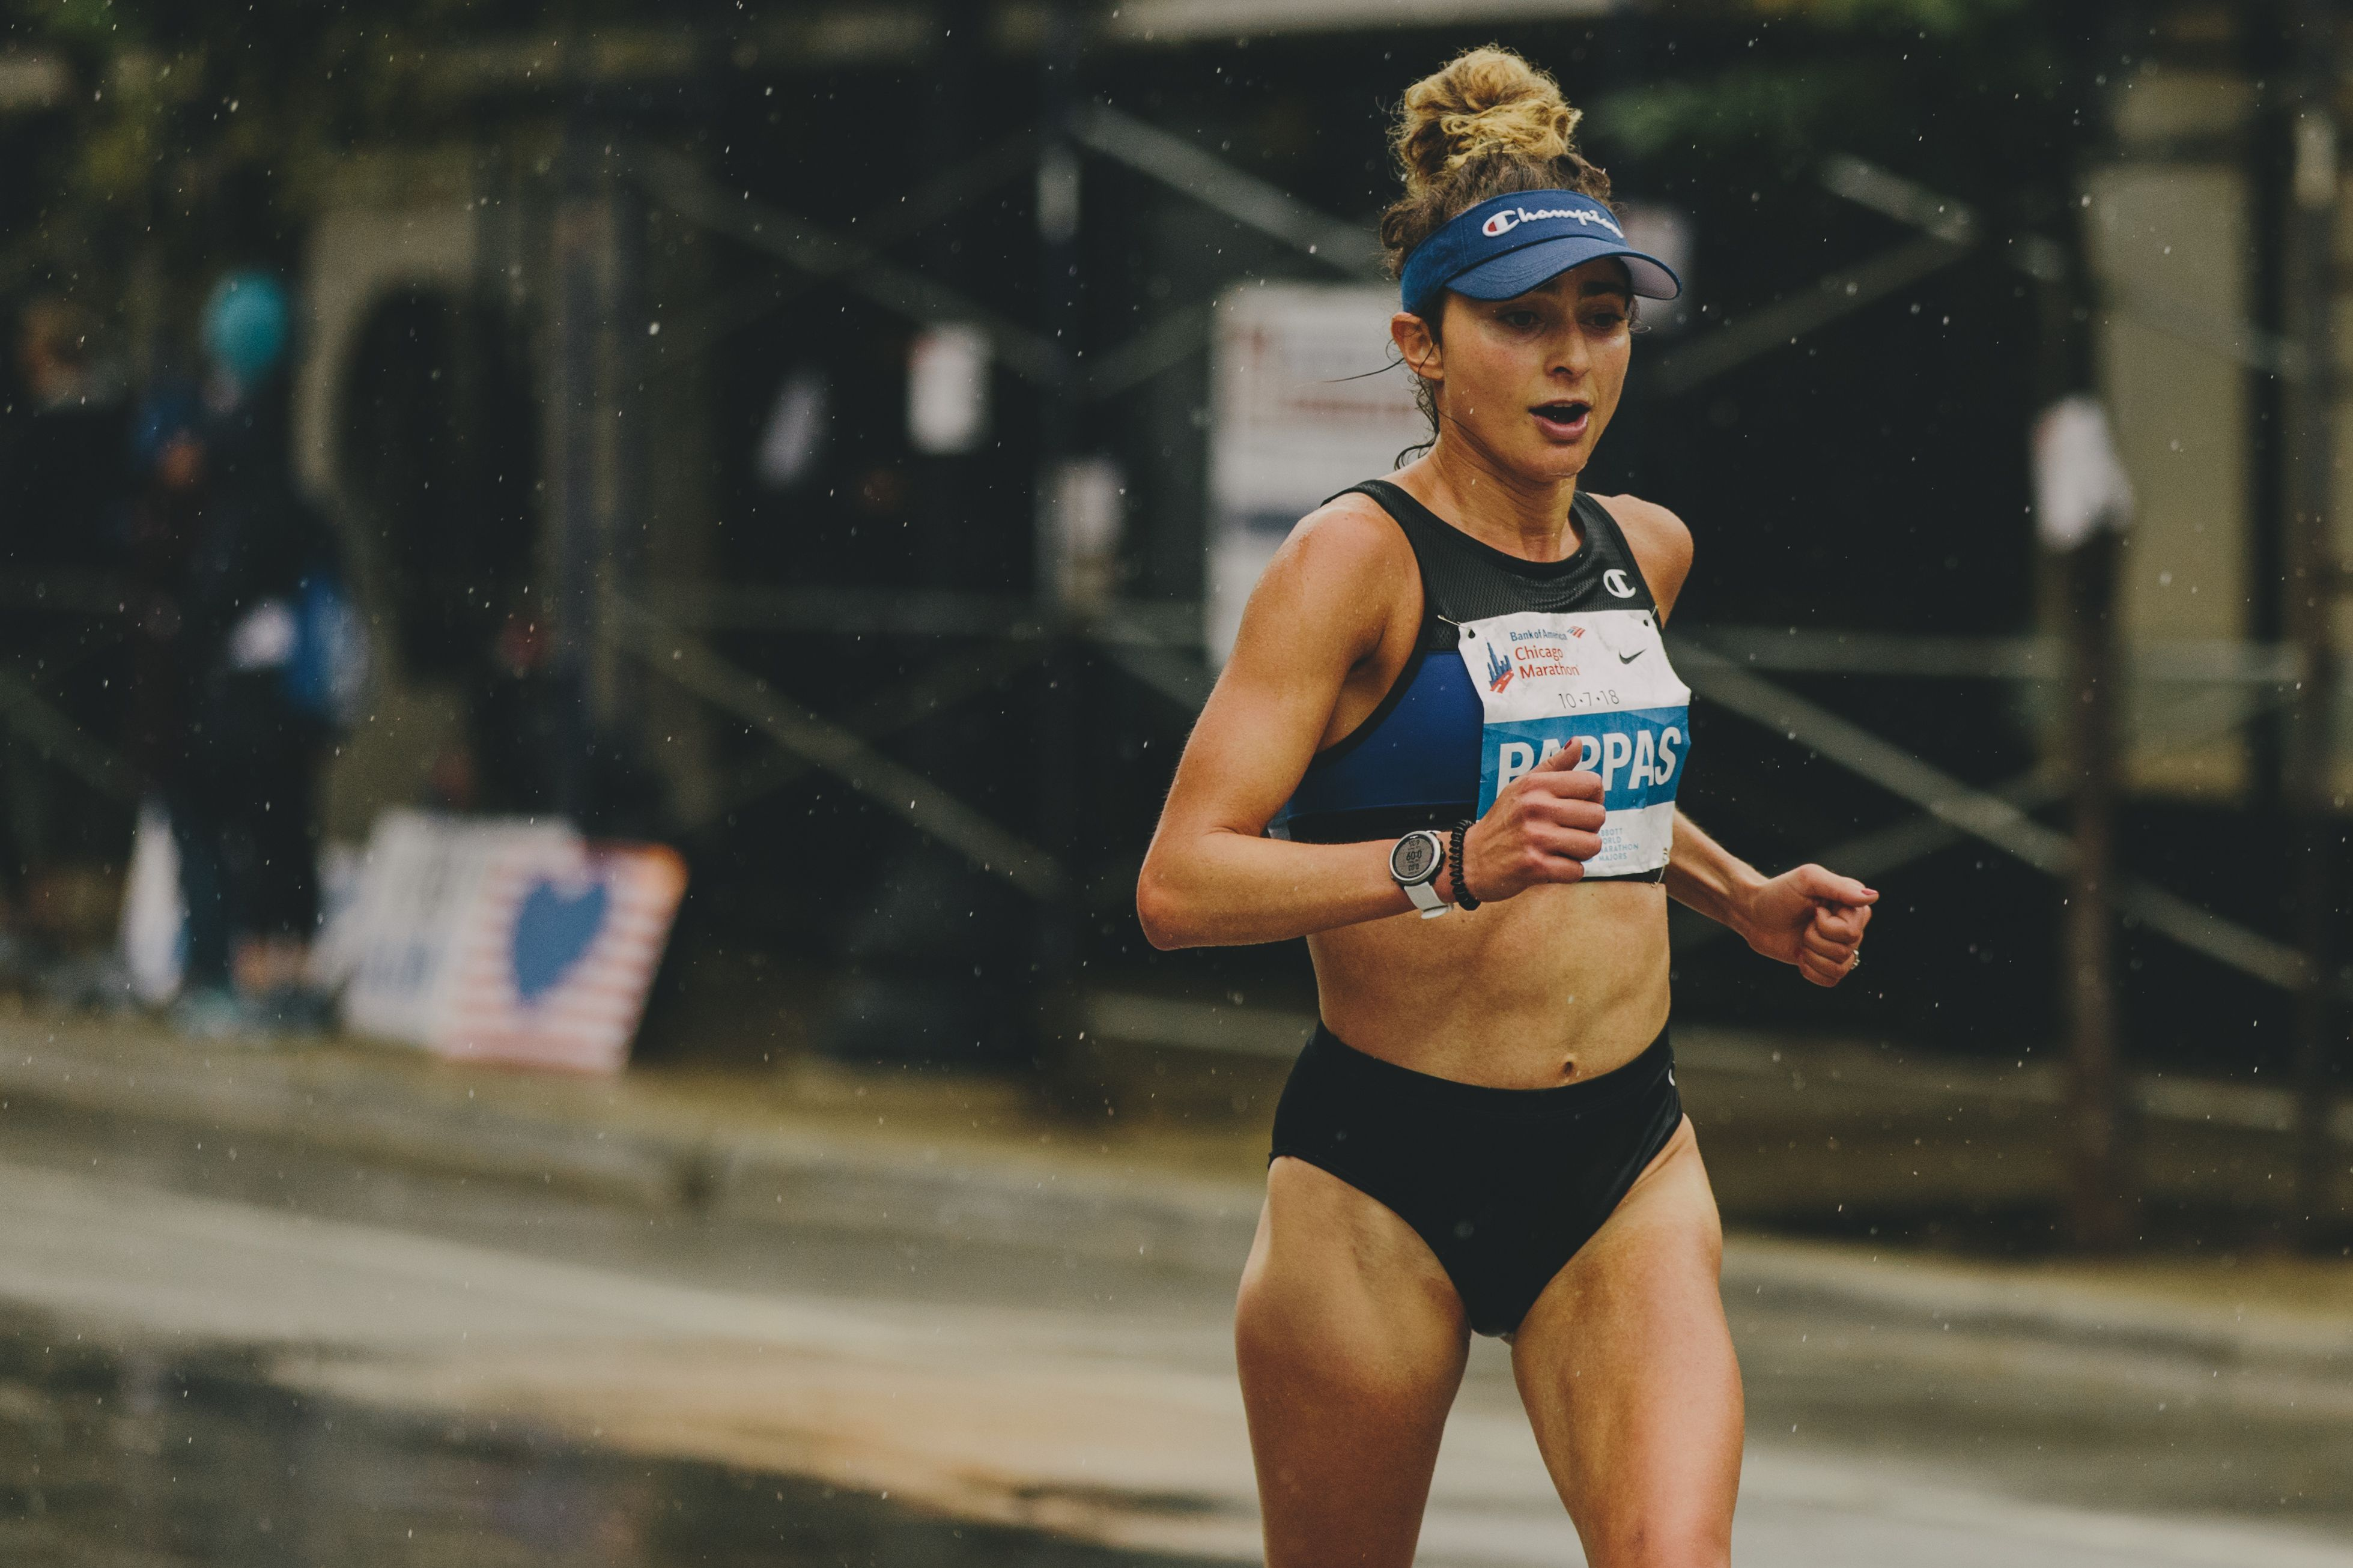 3 Warmup Drills Alexi Pappas Wants You to Do Before Your Next Run